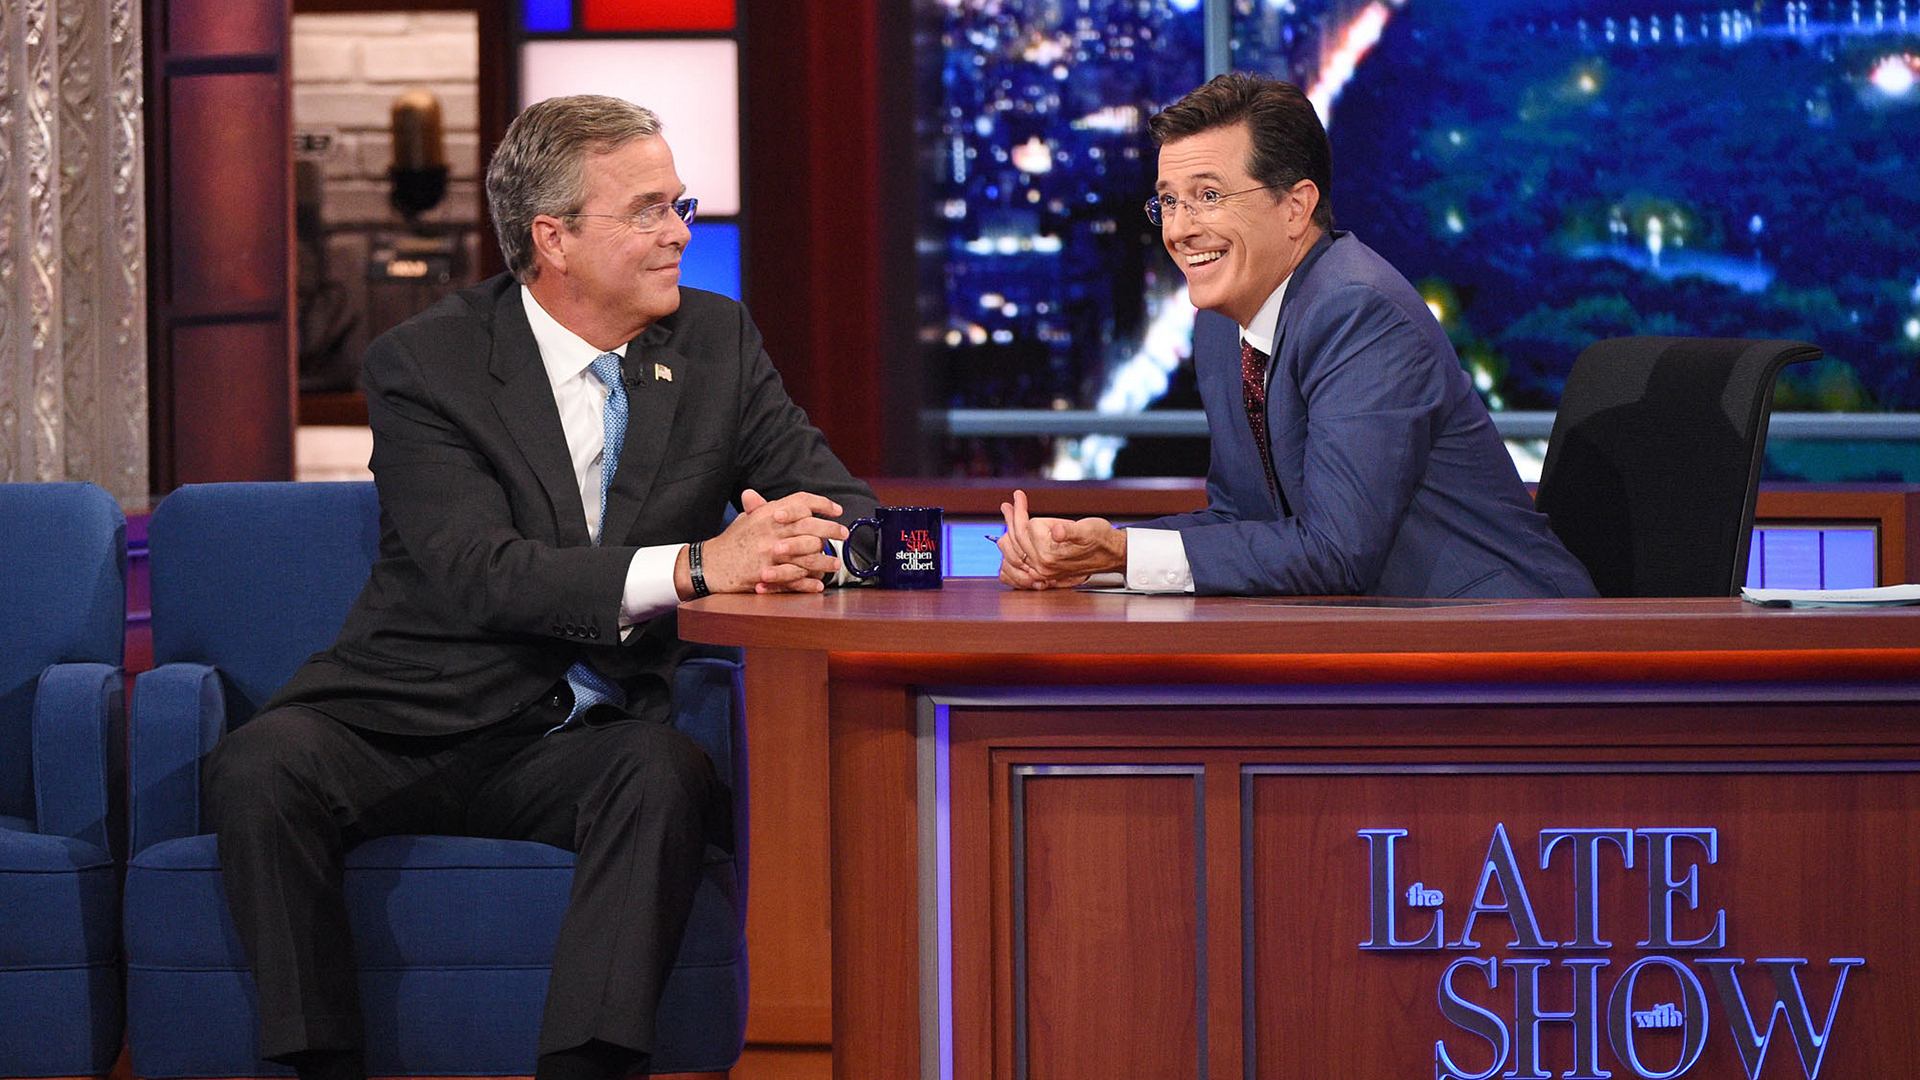 Jeb Bush and Stephen Colbert